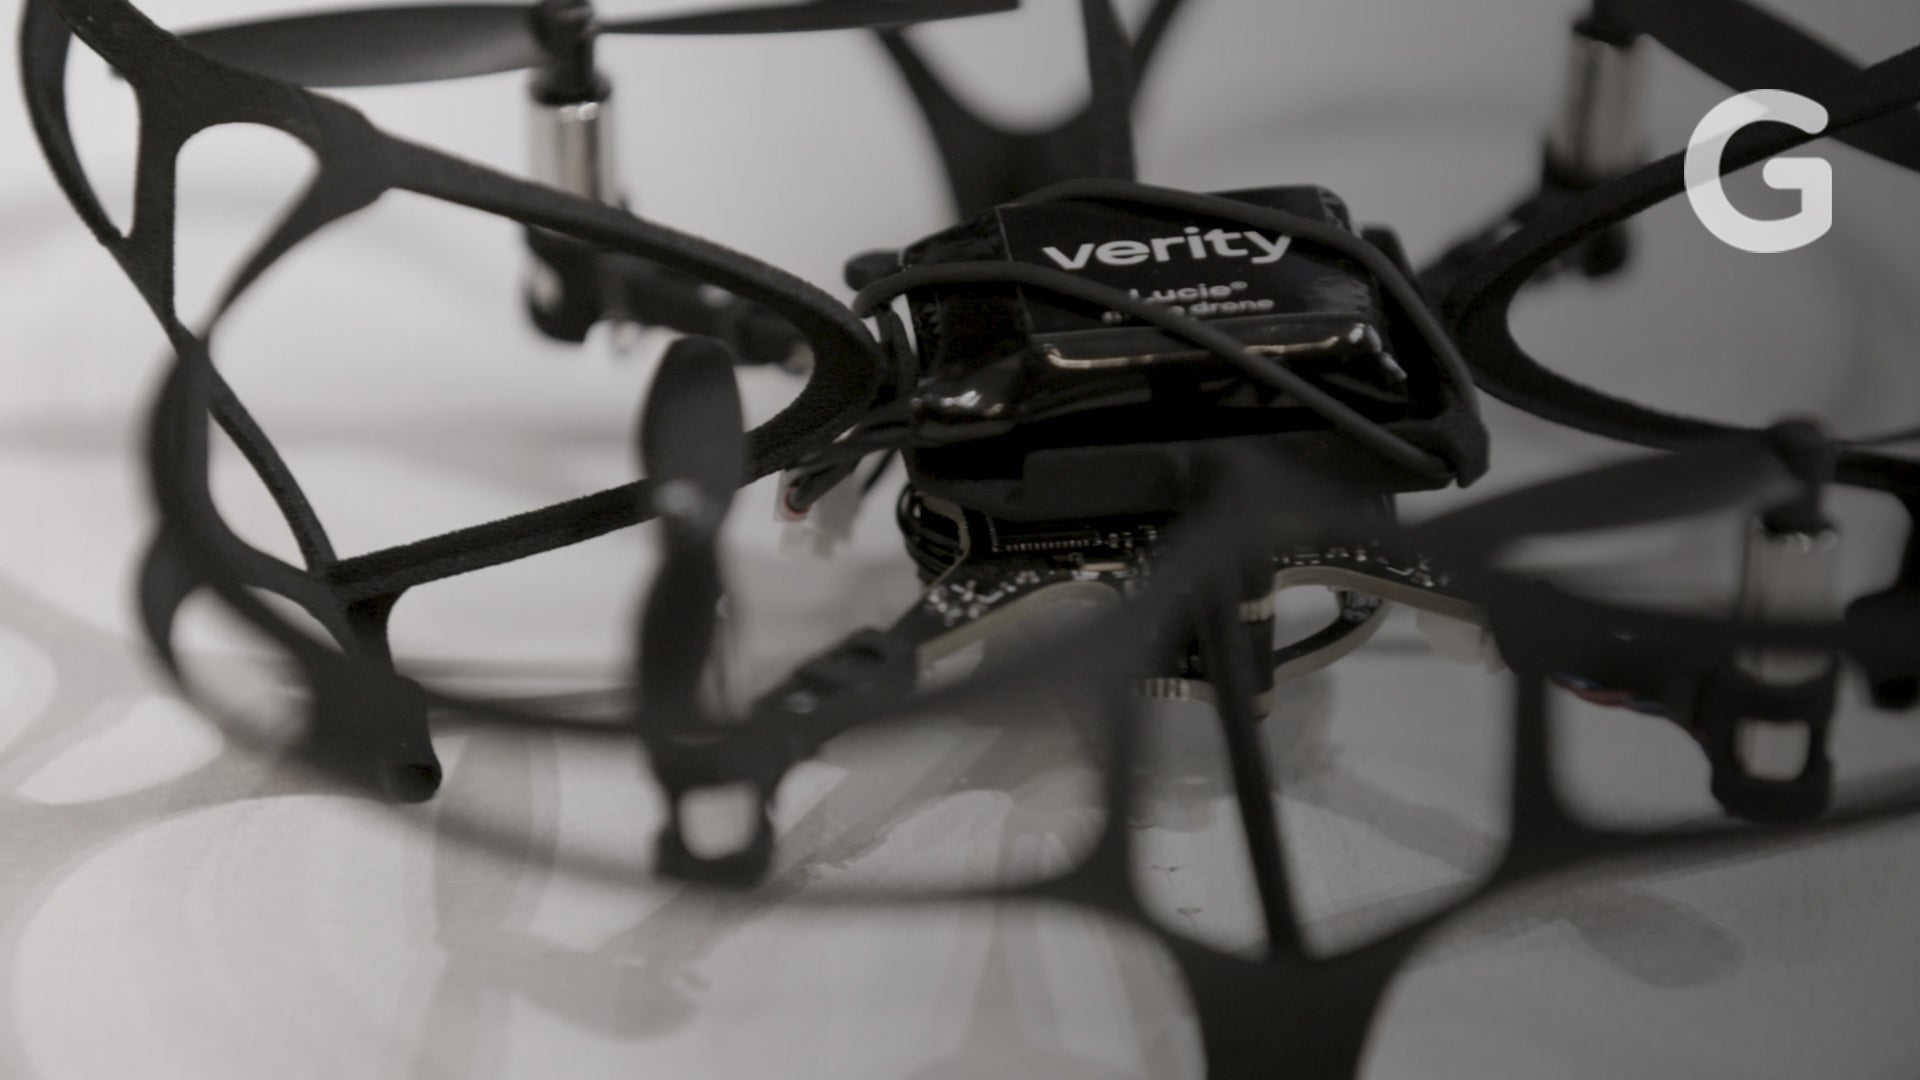 How Swarms Of Super Intelligent Drones Are Taking Over Live Entertainment